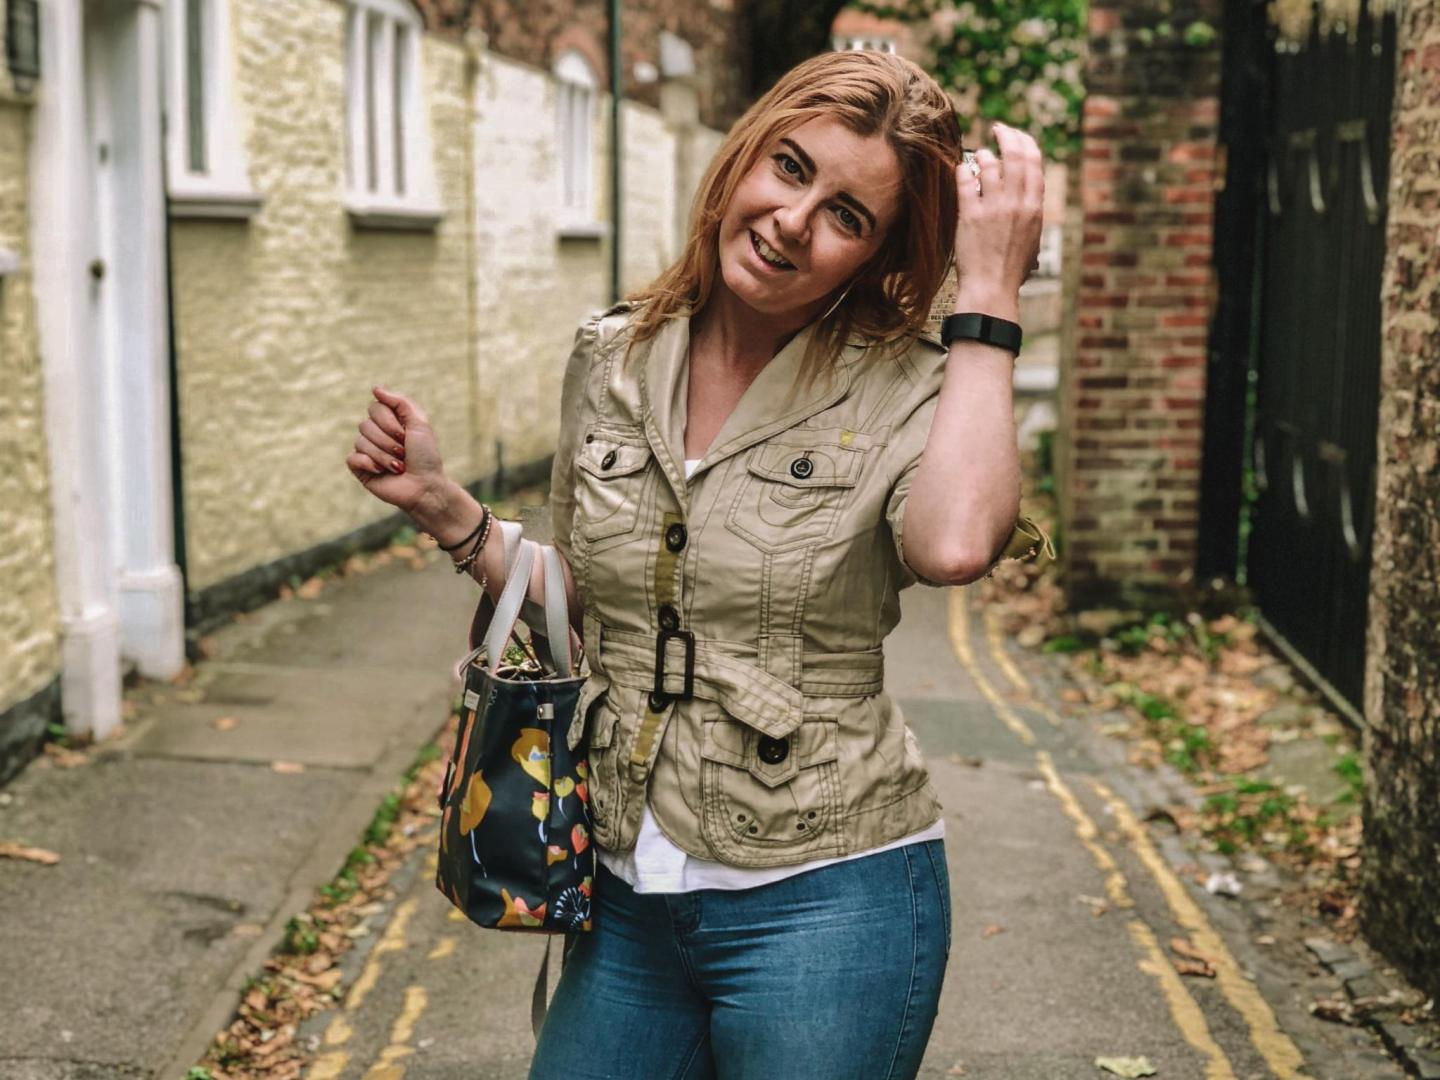 Autumn street scene in York with Emma dressed in a fitted jacket & jeans standing centre smiling